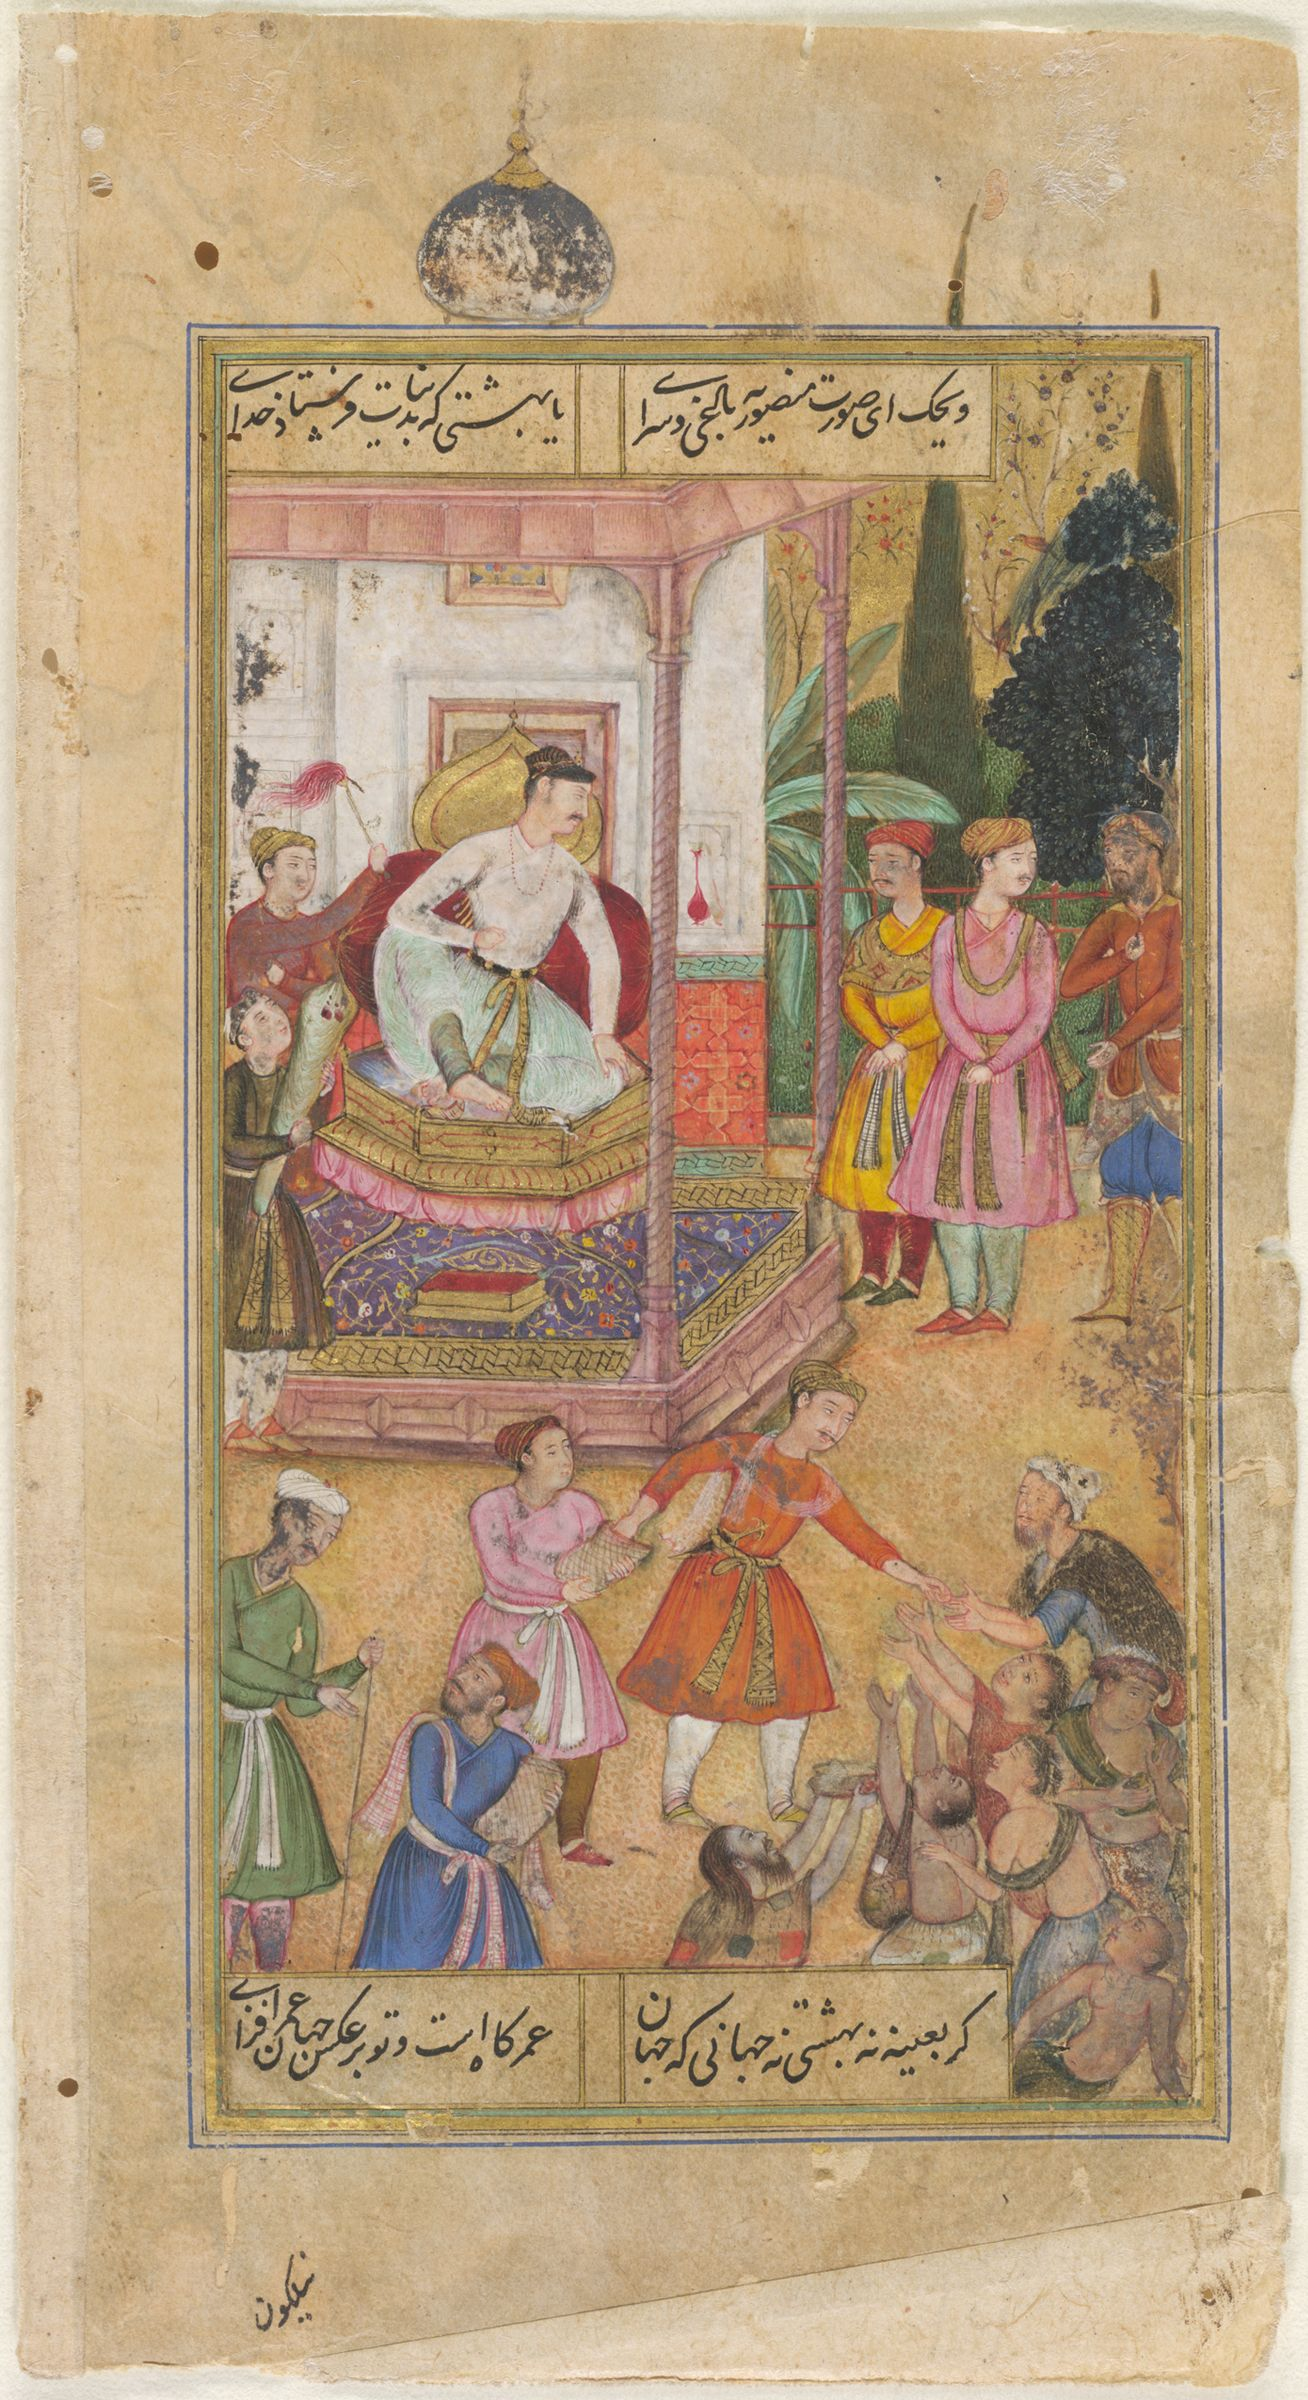 You Make Sweet Life Increase (Painting, Verso; Text, Recto), Folio 208 From A Manuscript Of The Divan (Collection Of Works) Of Anvari